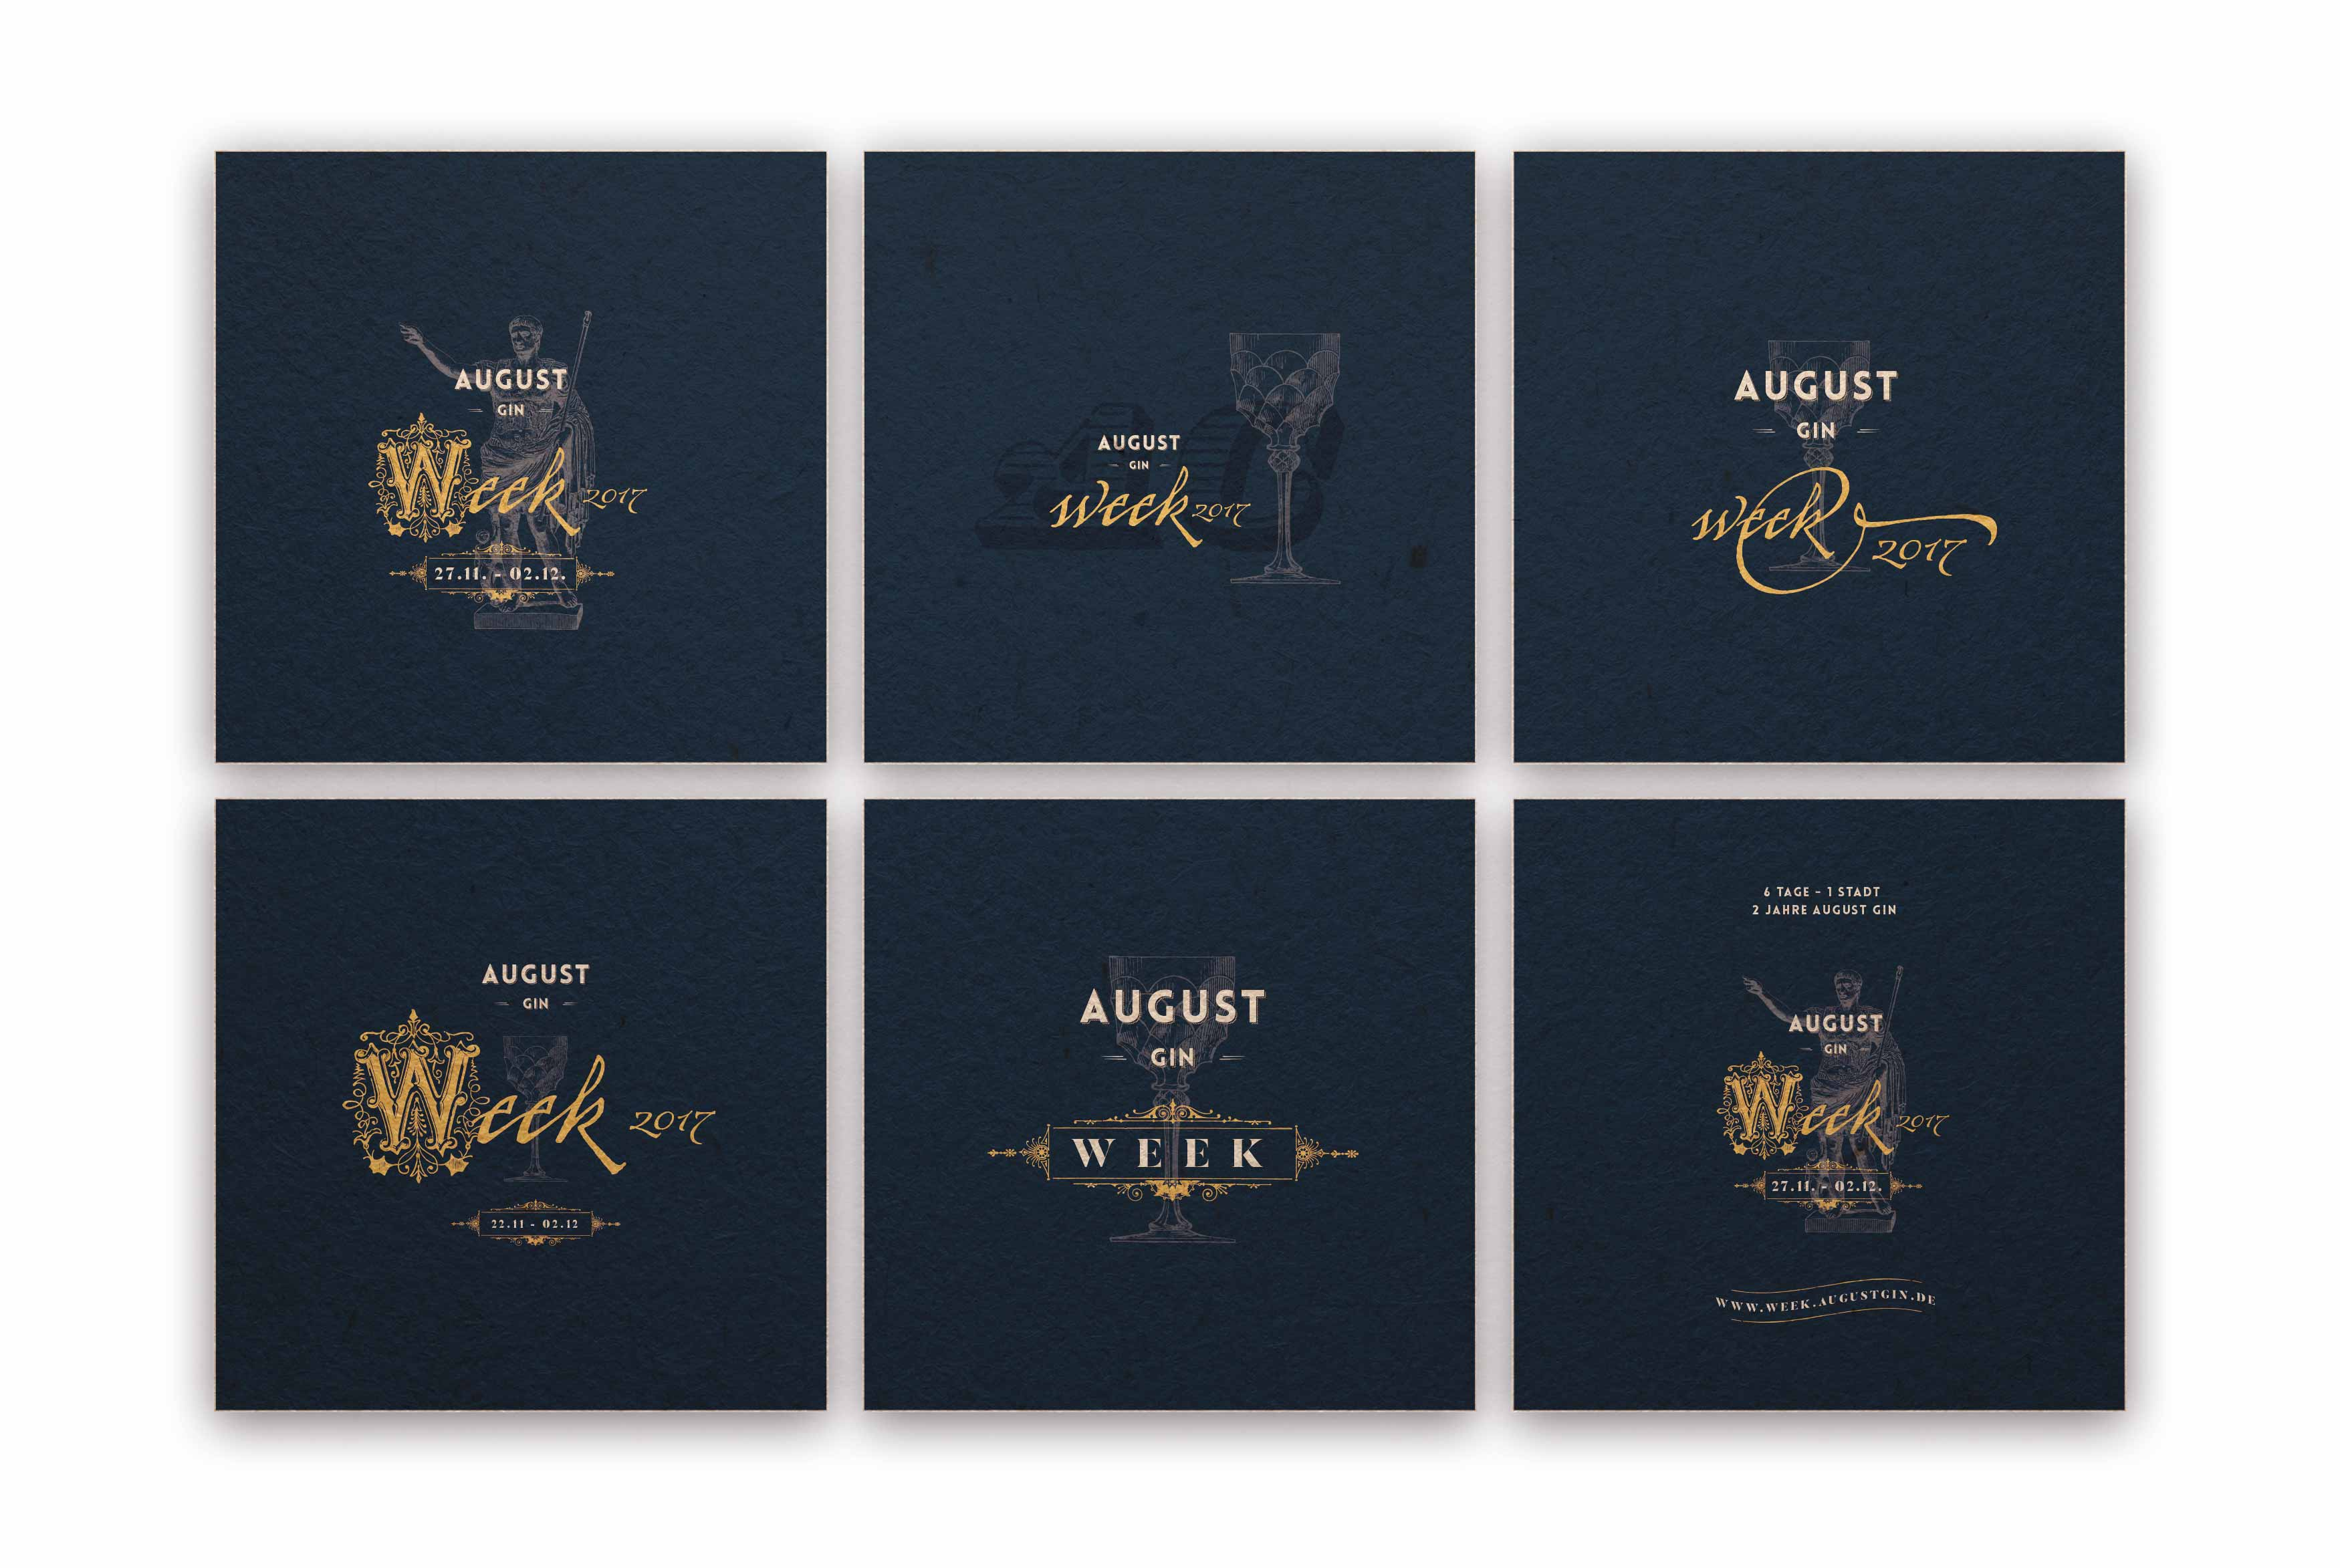 12-week-august-gin-augsburg-design-branding